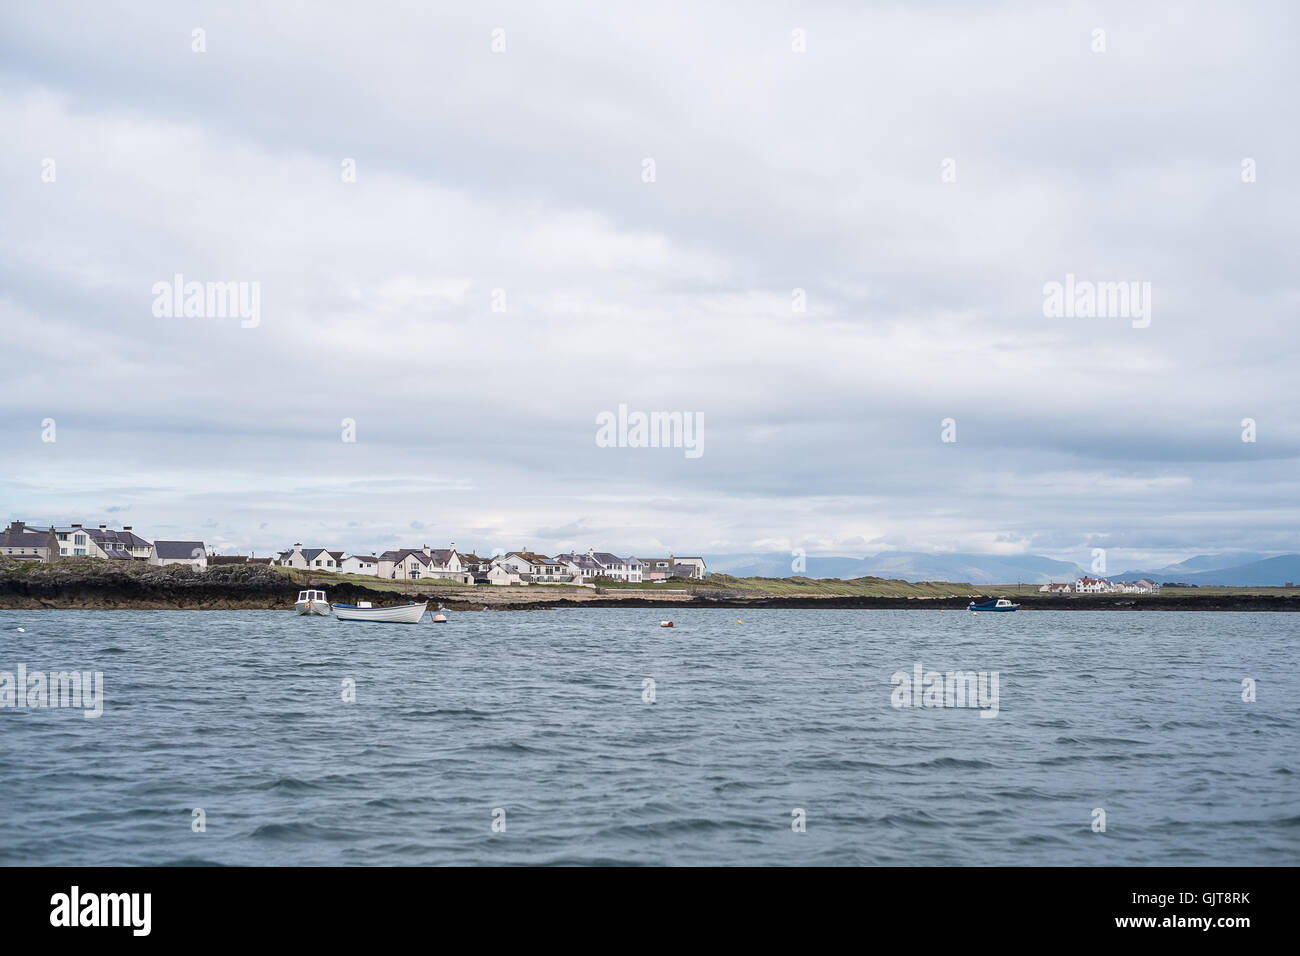 View from the sea of Broad Beach, Rhosneigr, Anglesey, Ynys Mon, North Wales Gwynedd, UK - Stock Image